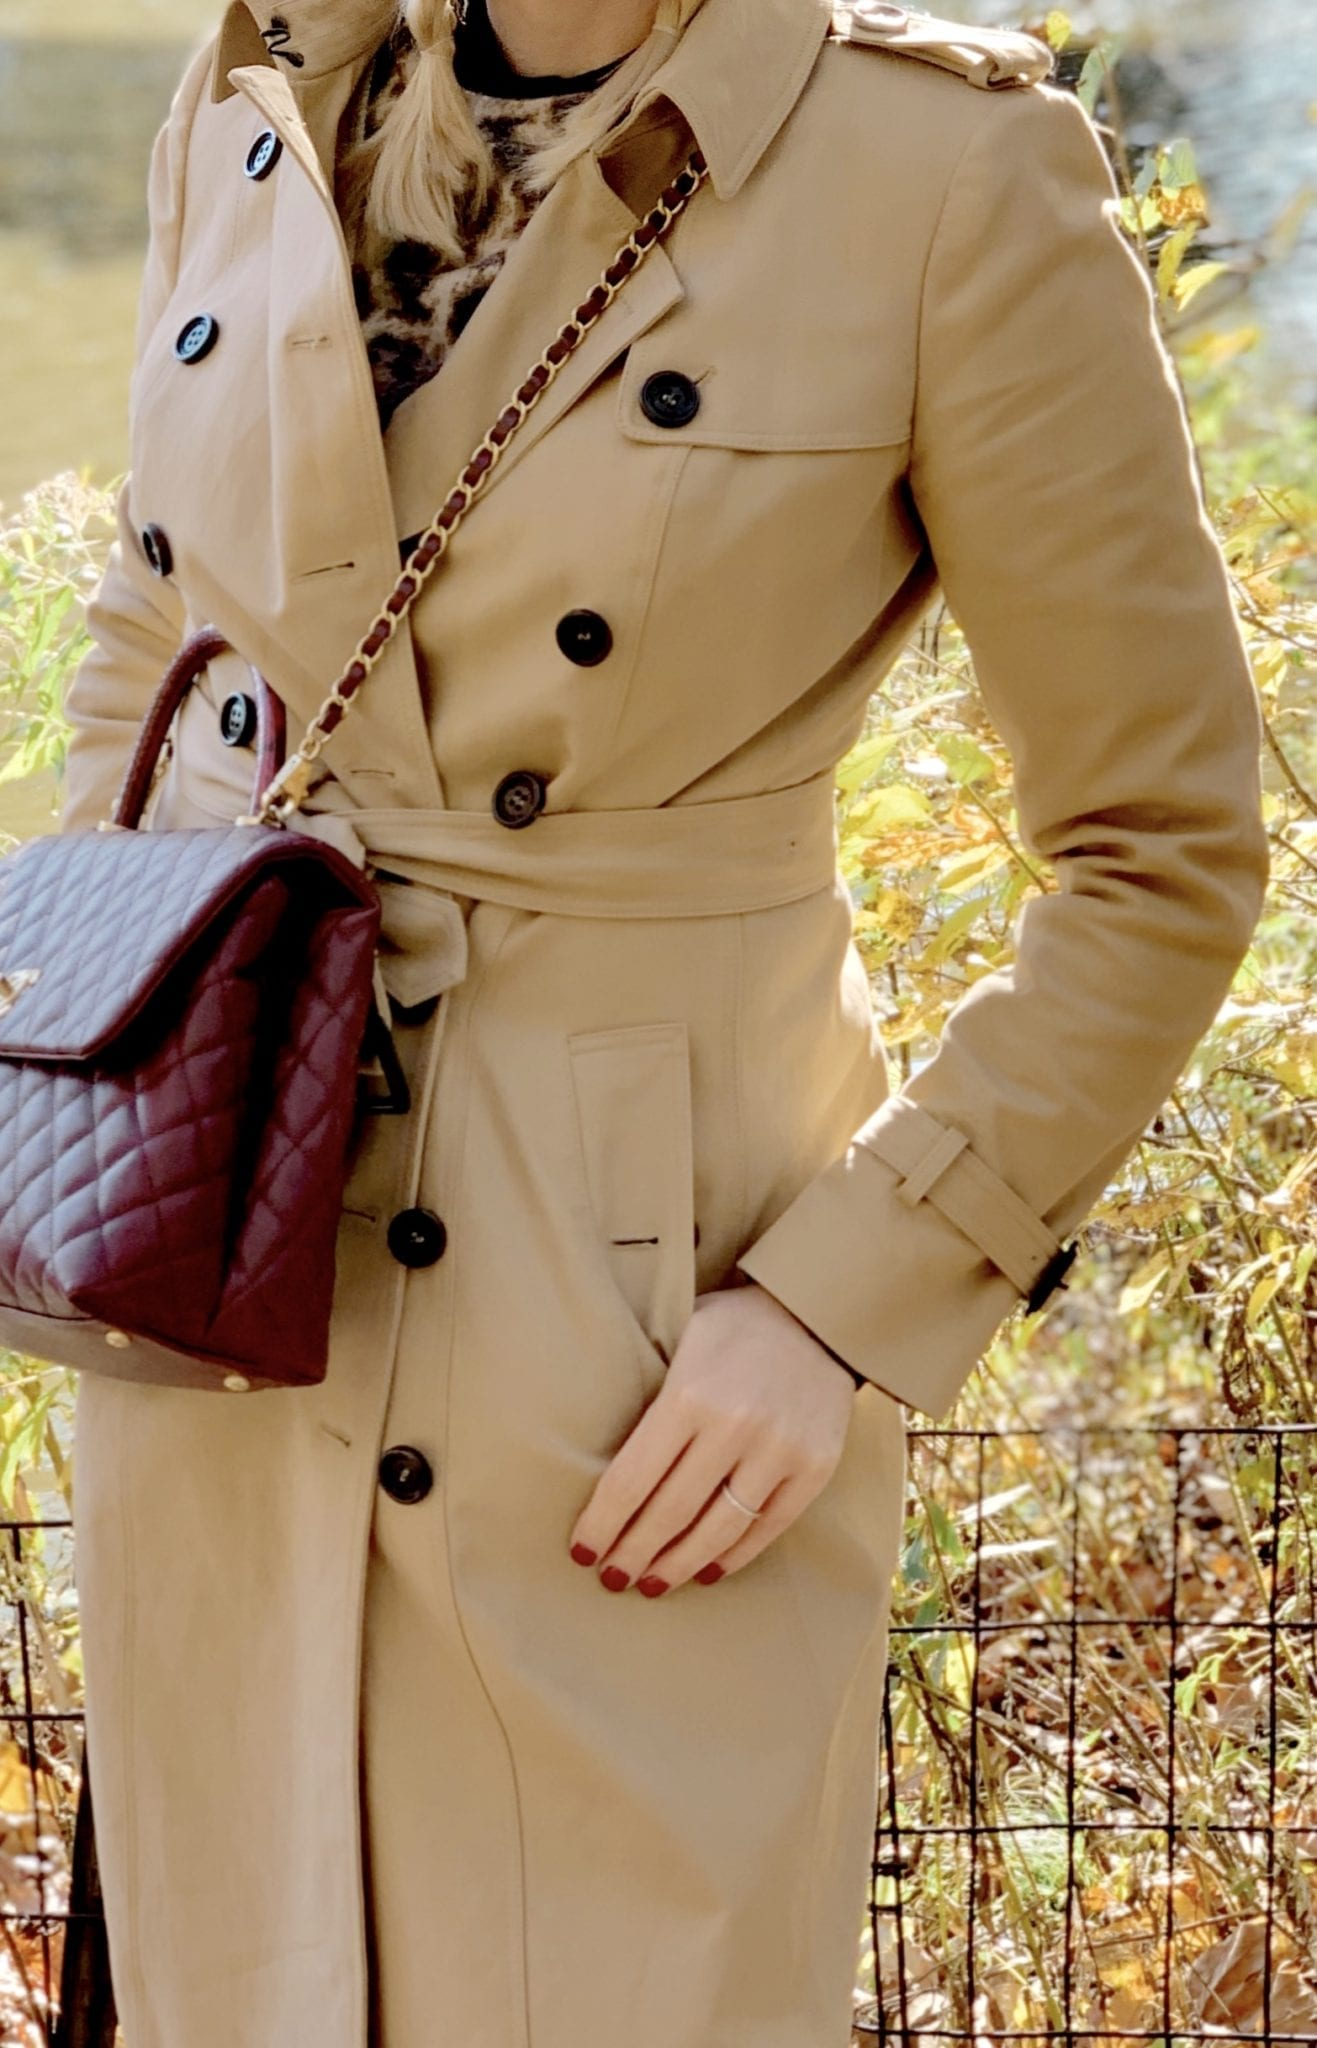 A Classic Trench coat from Burberry and Fall 2019 Chanel handbag in burgundy.